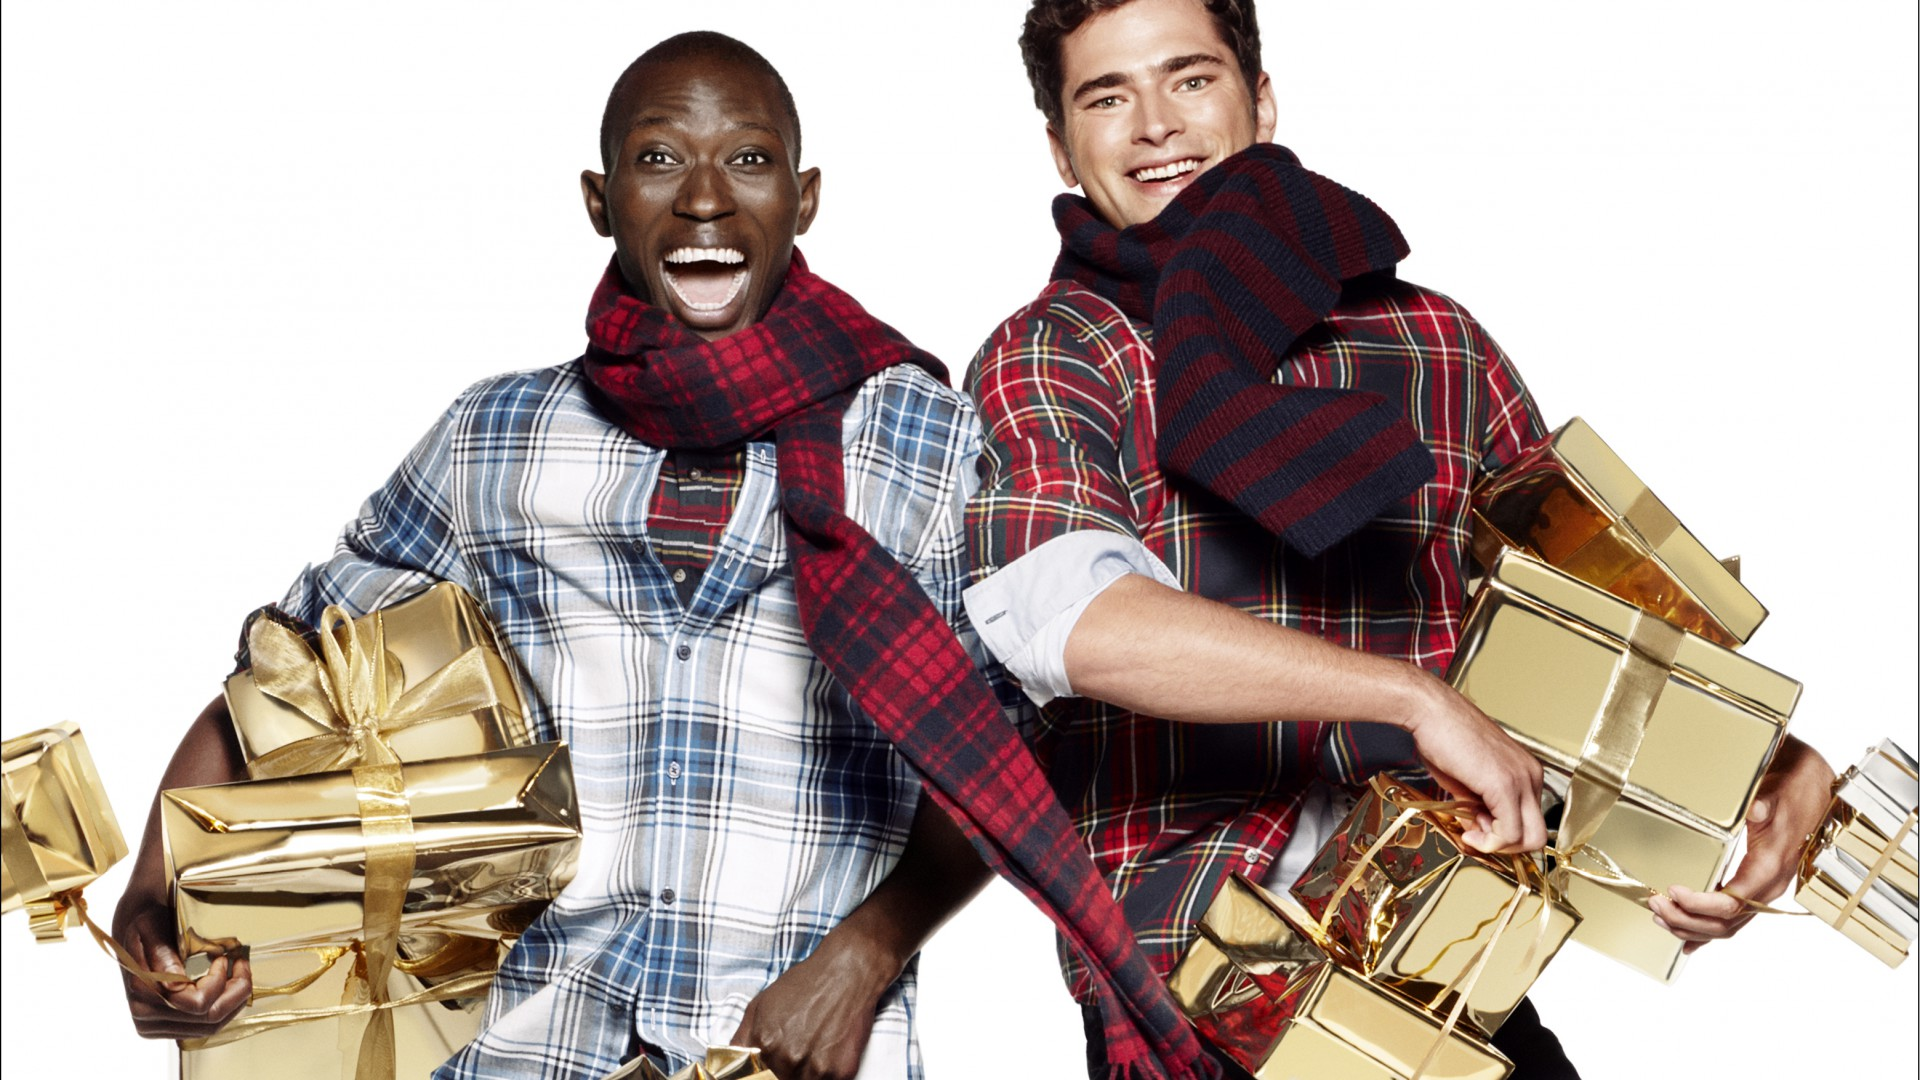 Armando Cabral, Sean O'Pry, Top Fashion Models 2015, model, gifts, smile (horizontal)